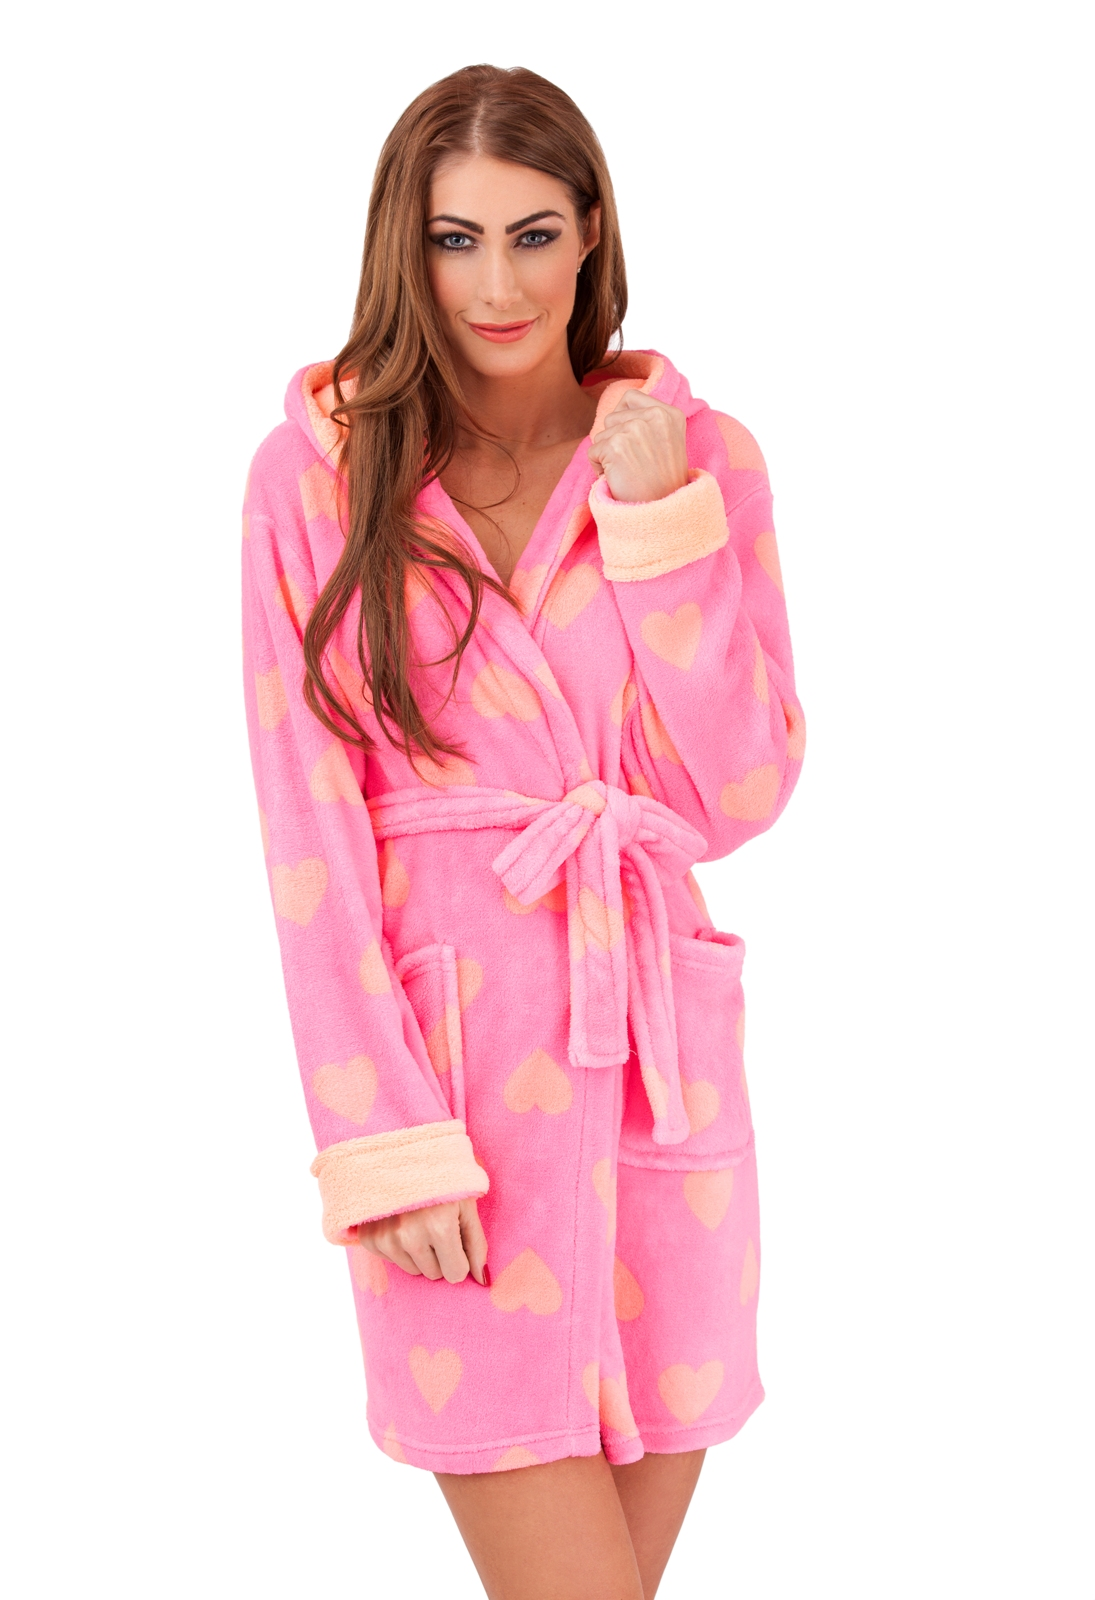 Snuggle up in our cosy womens dressing gowns. Dissover our range of women's nightwear, from cosy pyjama sets to loungewear. Free UK delivery on orders over £